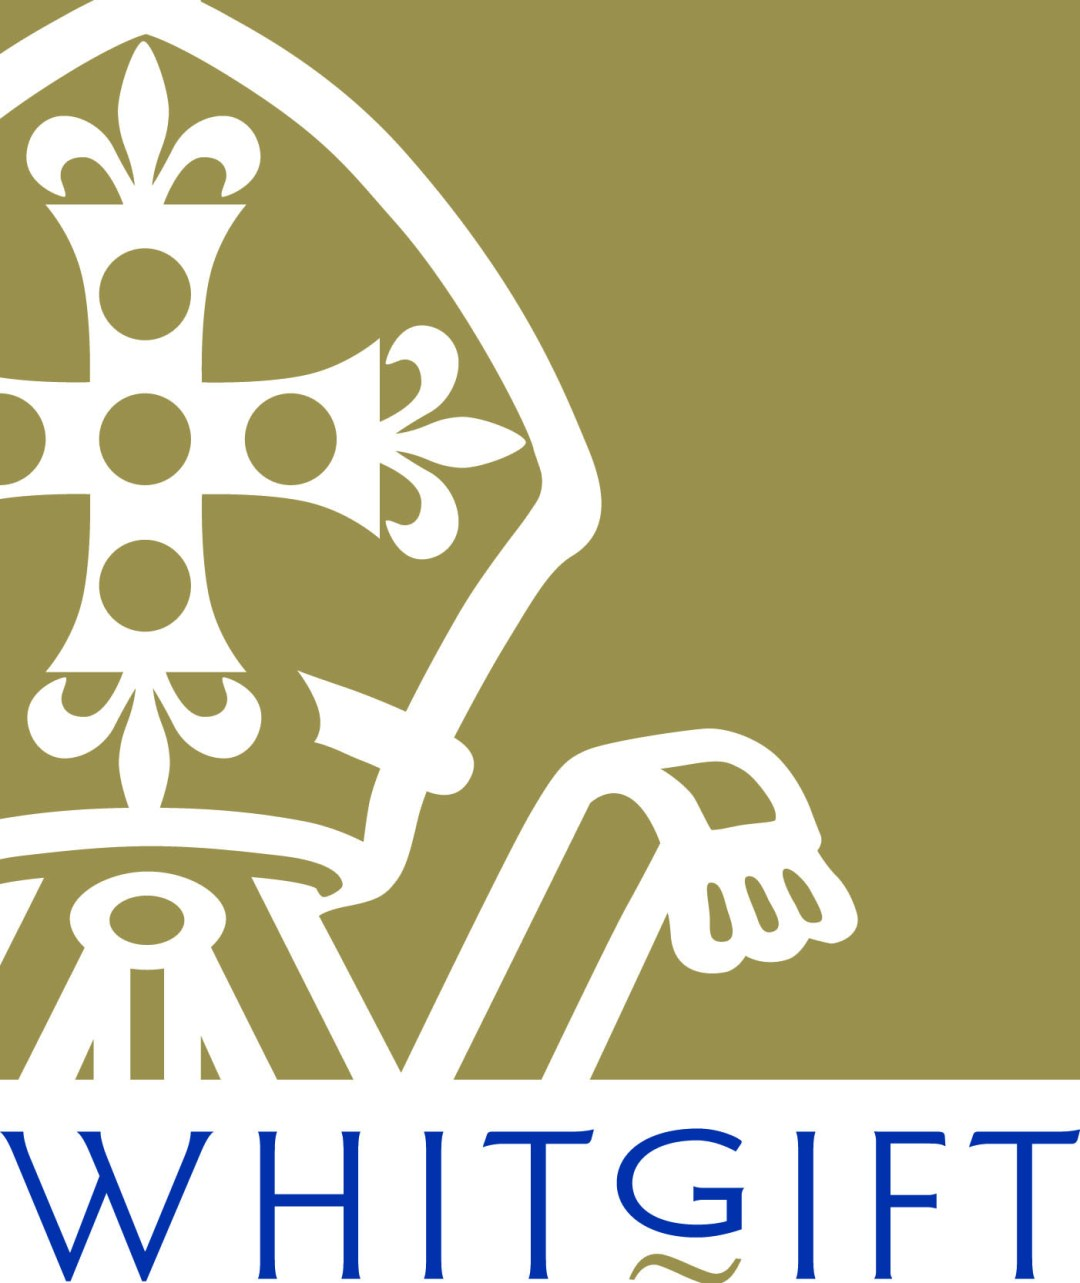 Whitgift Crest 2